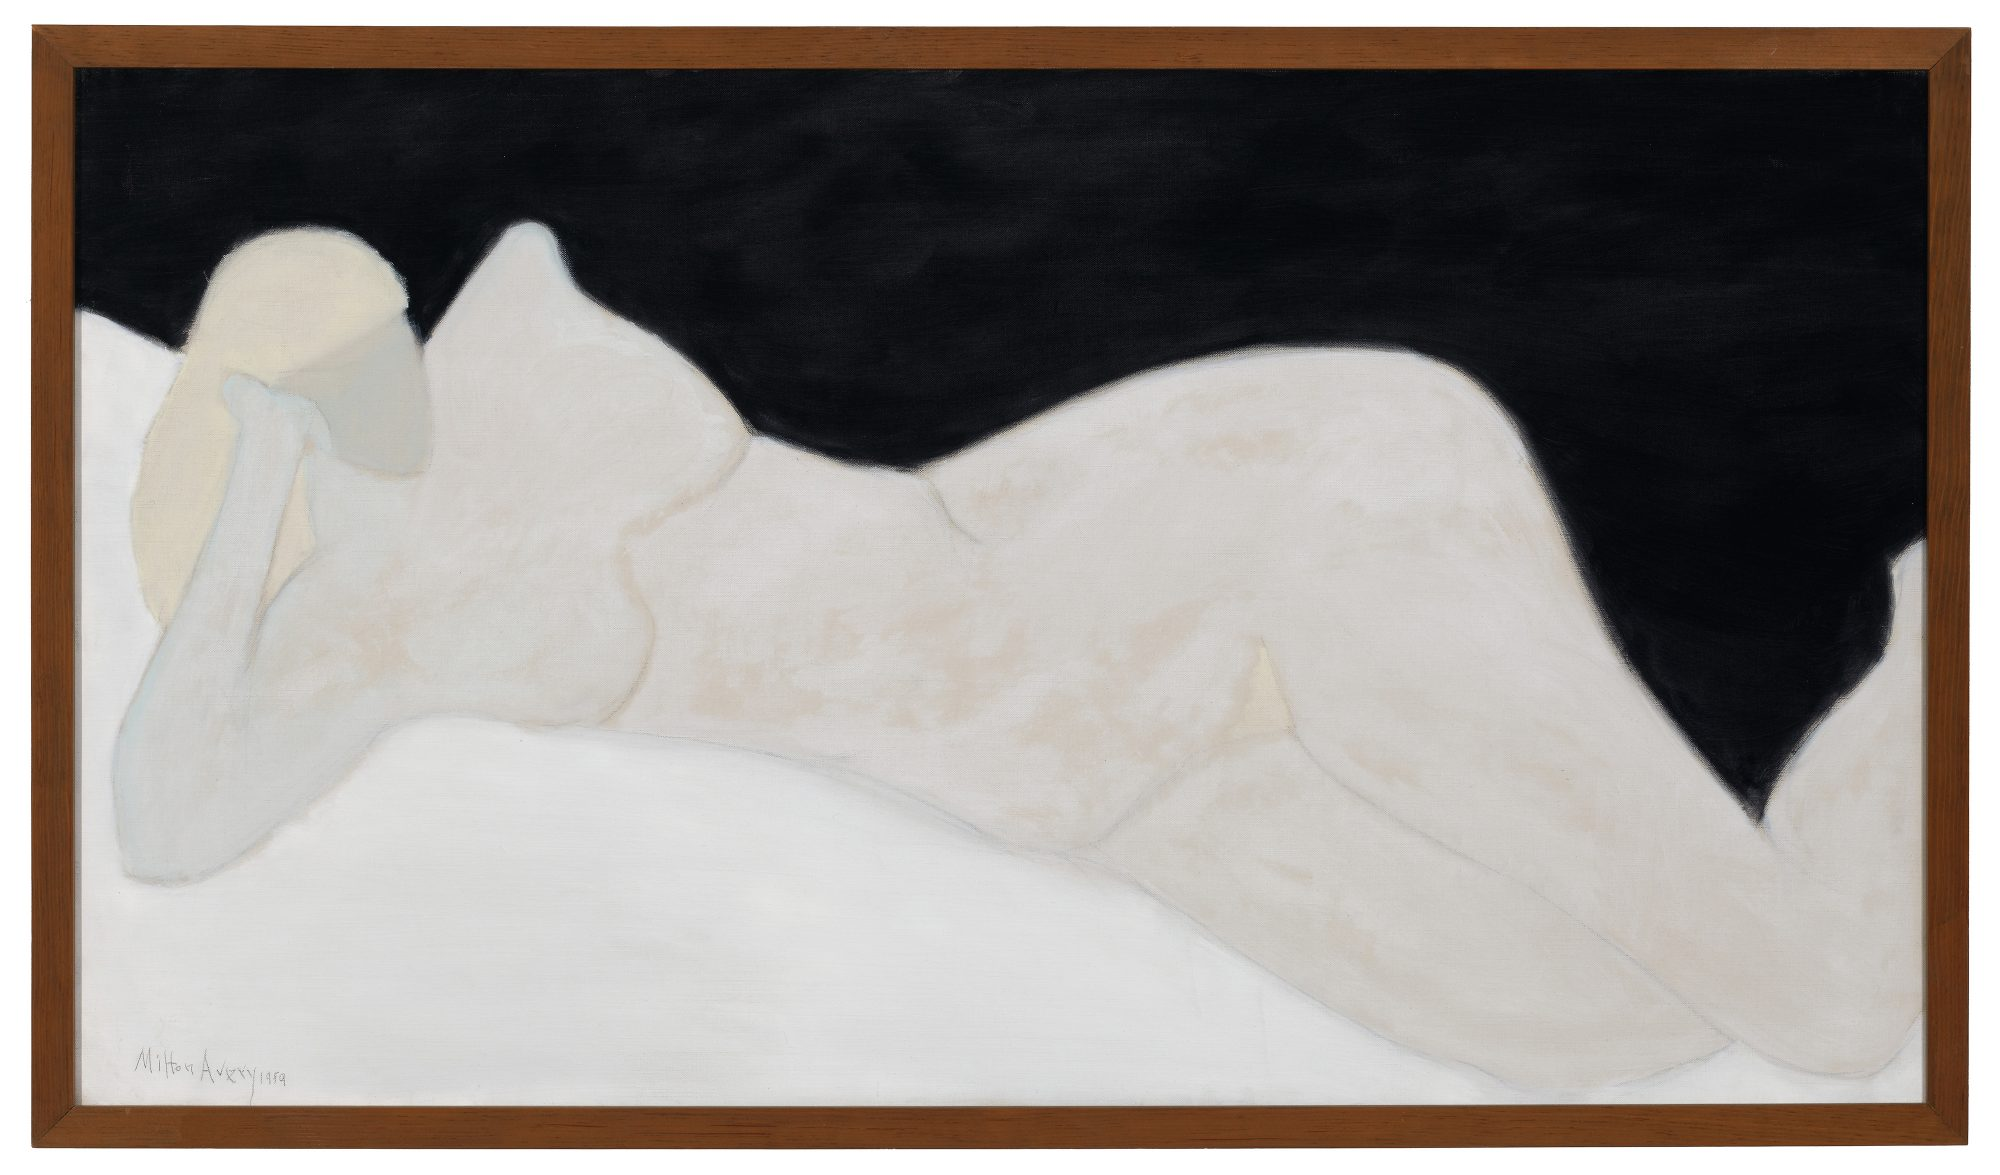 Milton Clark Avery, Reclining Blonde, 1959. Oil on canvas, 29 15/16 x 52 1/16 in. Bequest of Lawrence H. Bloedel, Class of 1923. 77.9.1